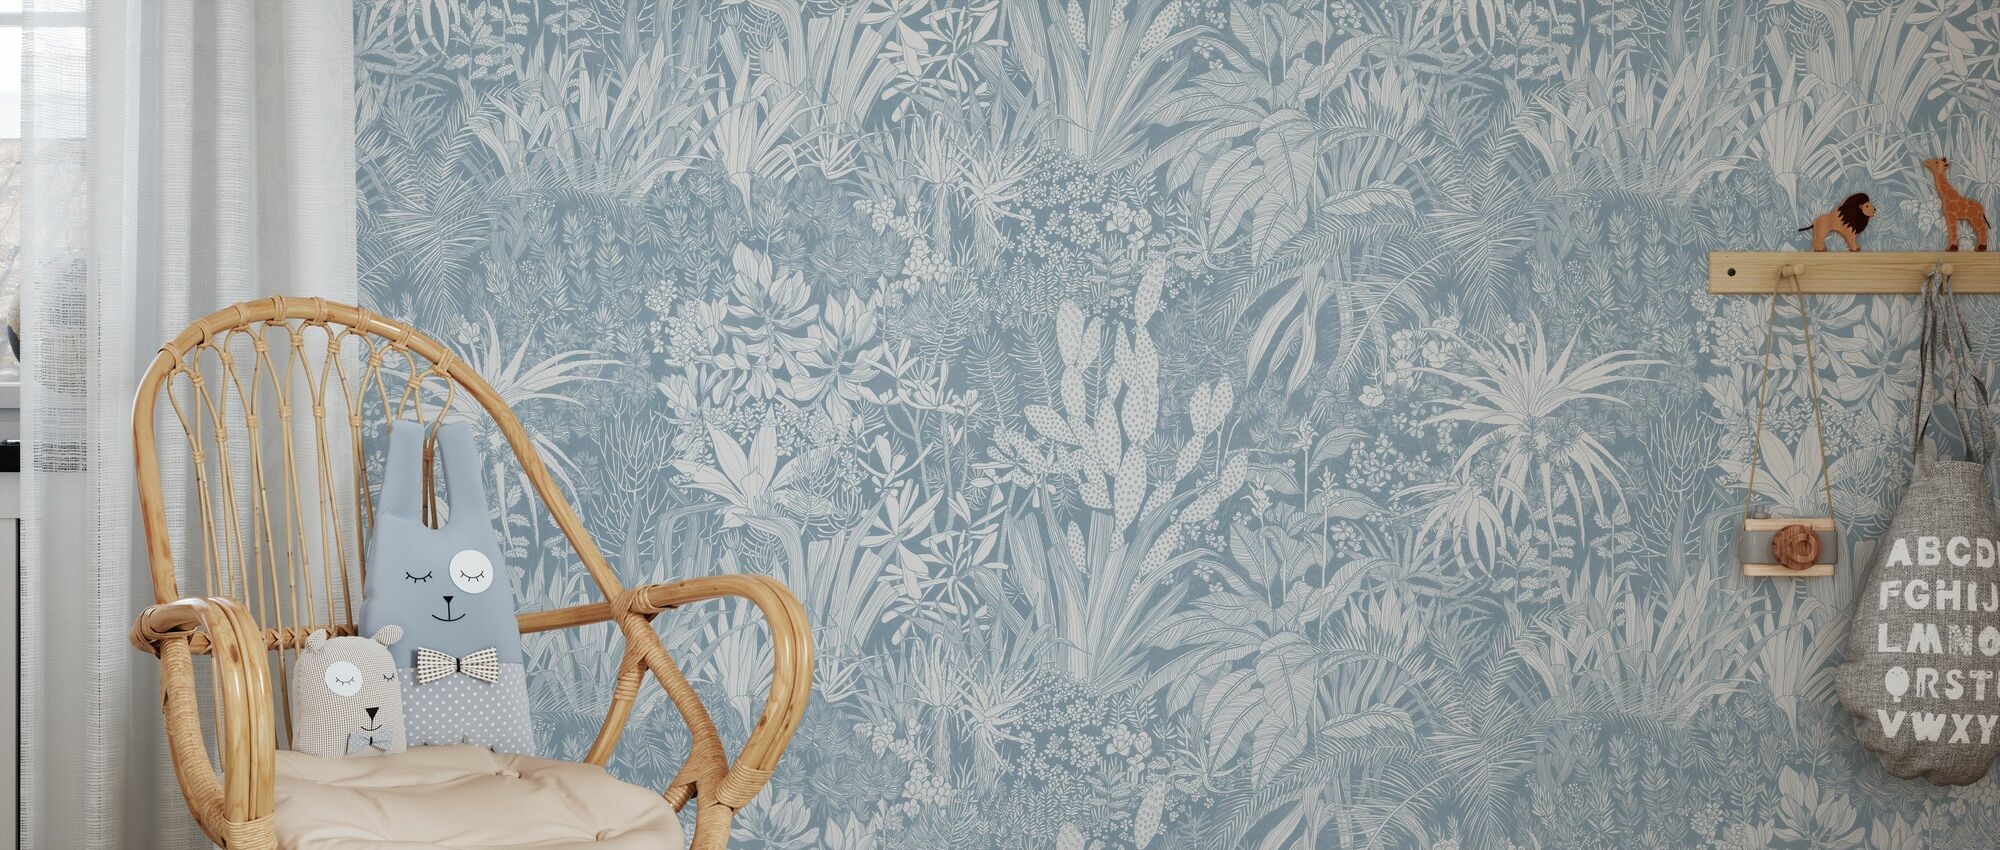 Highveld Garden - Light Blue - Wallpaper - Kids Room